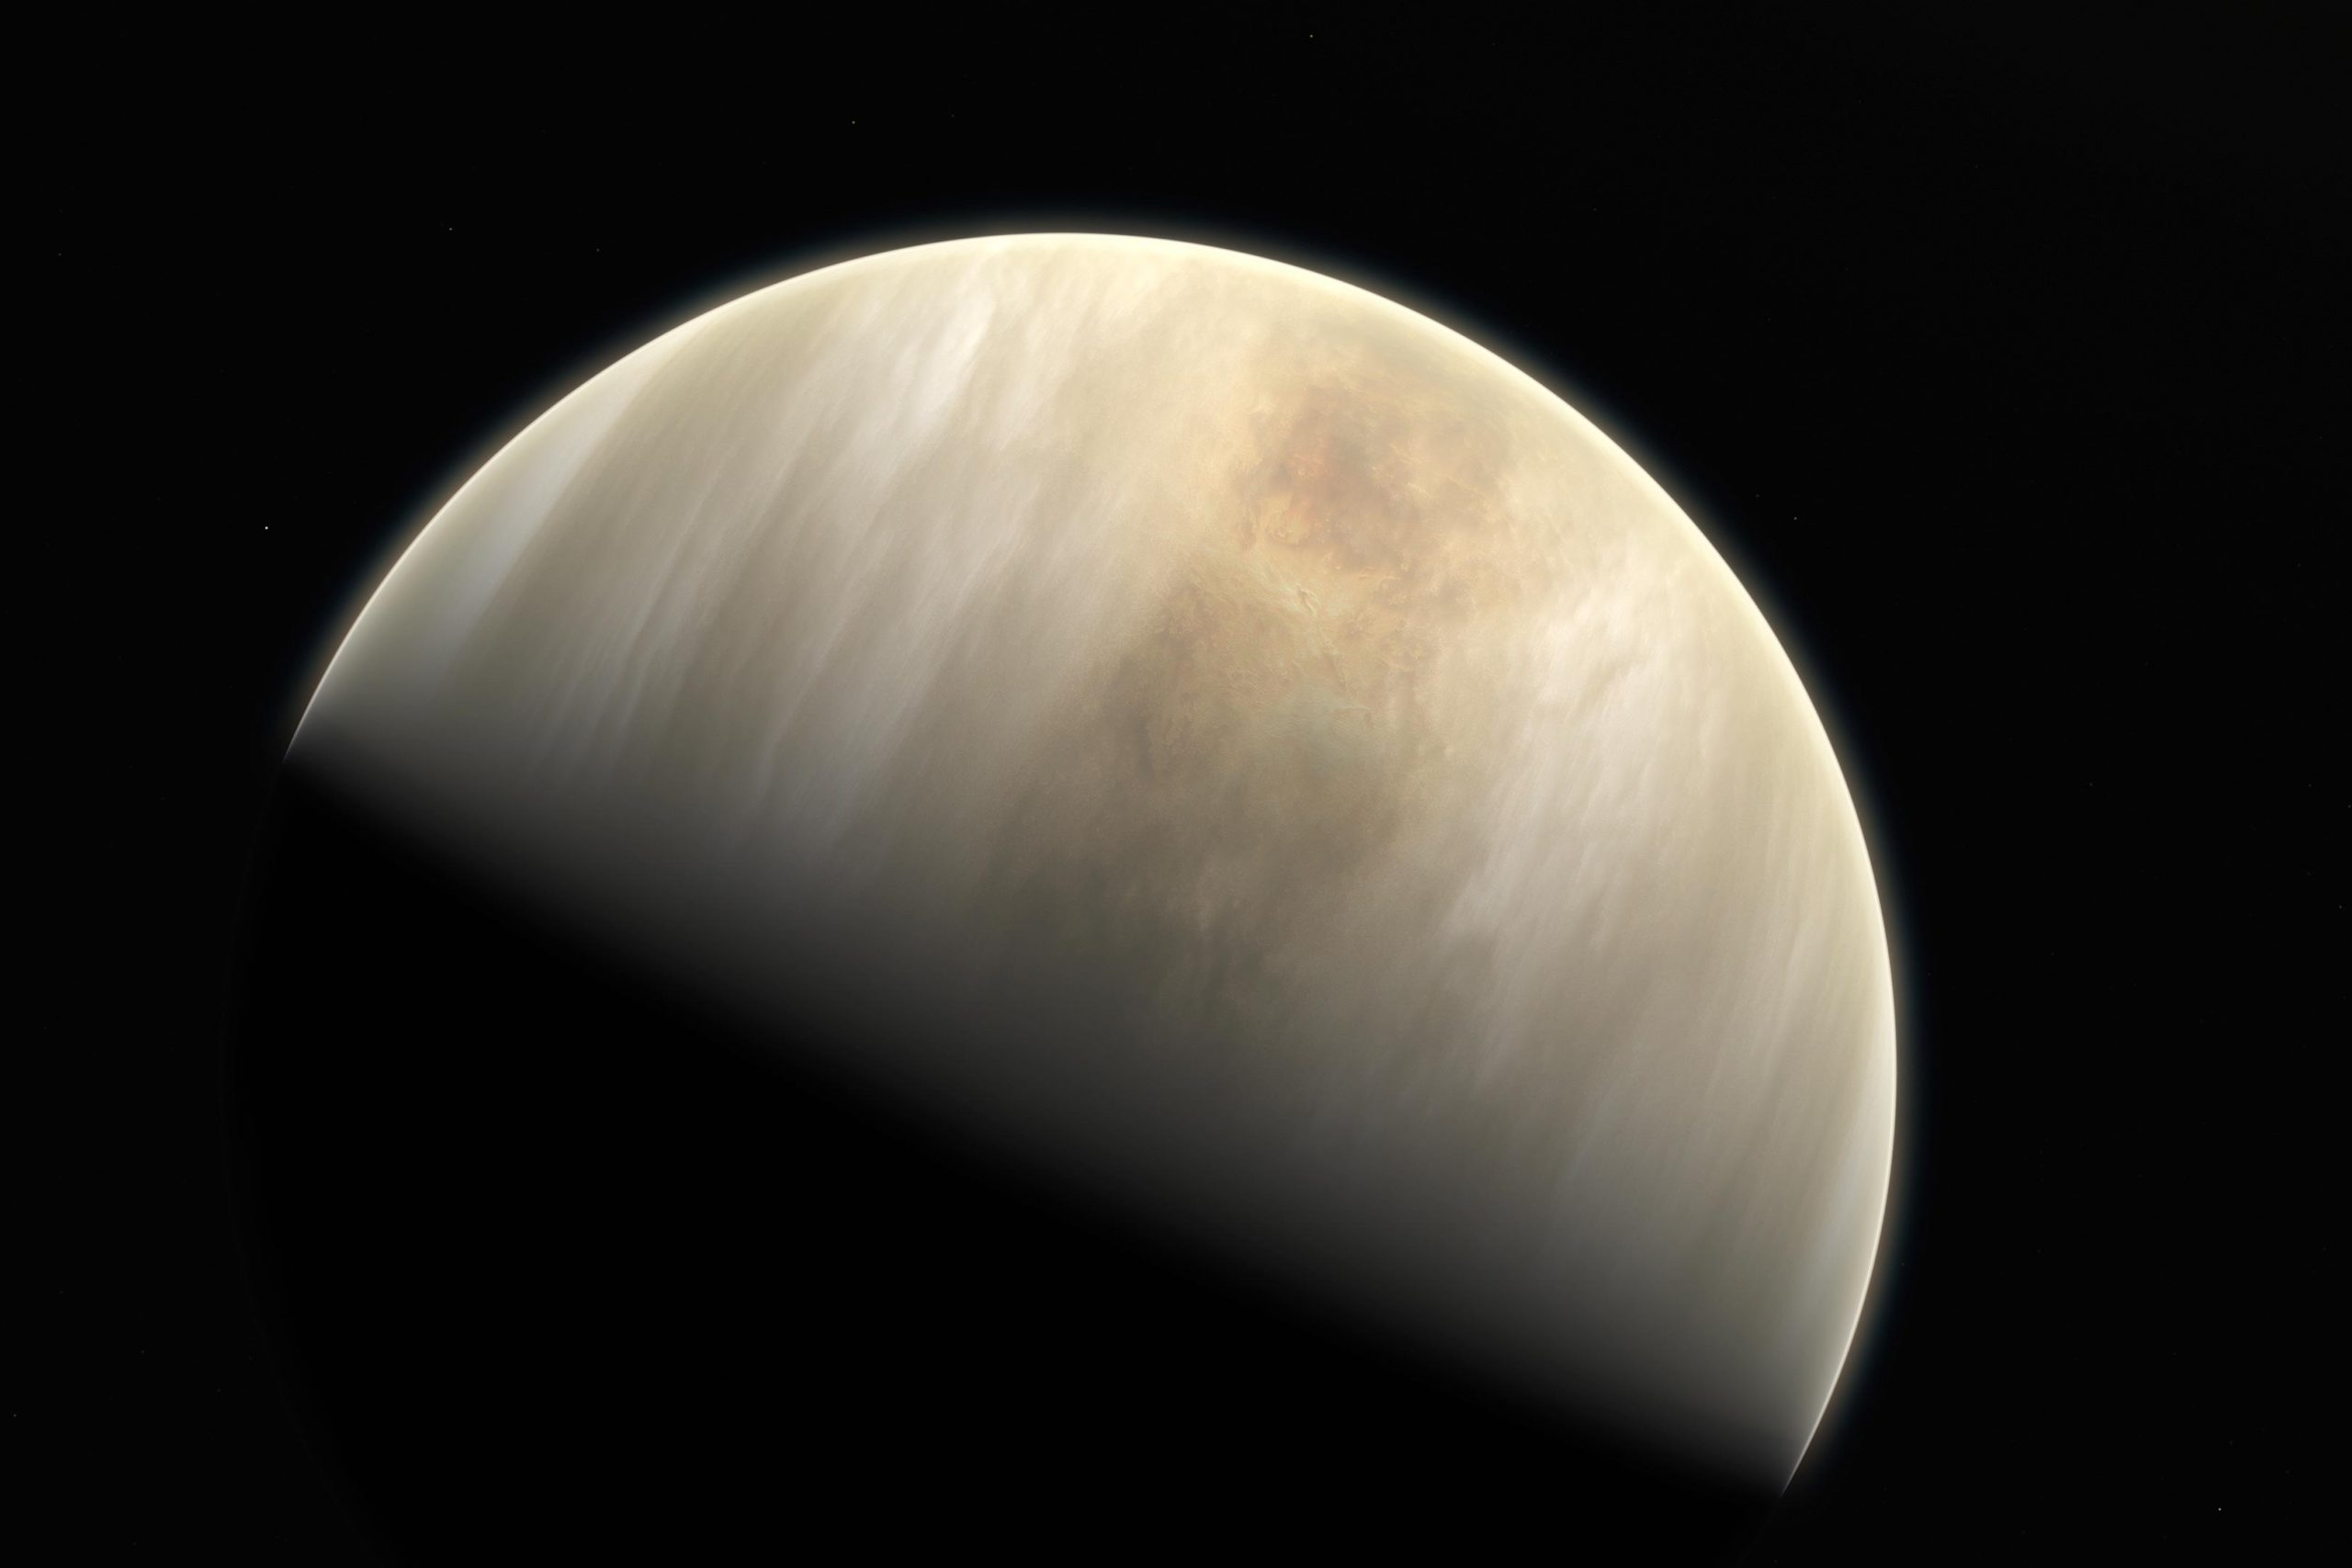 Scientists Wonder About Possible Sign of Life on Venus